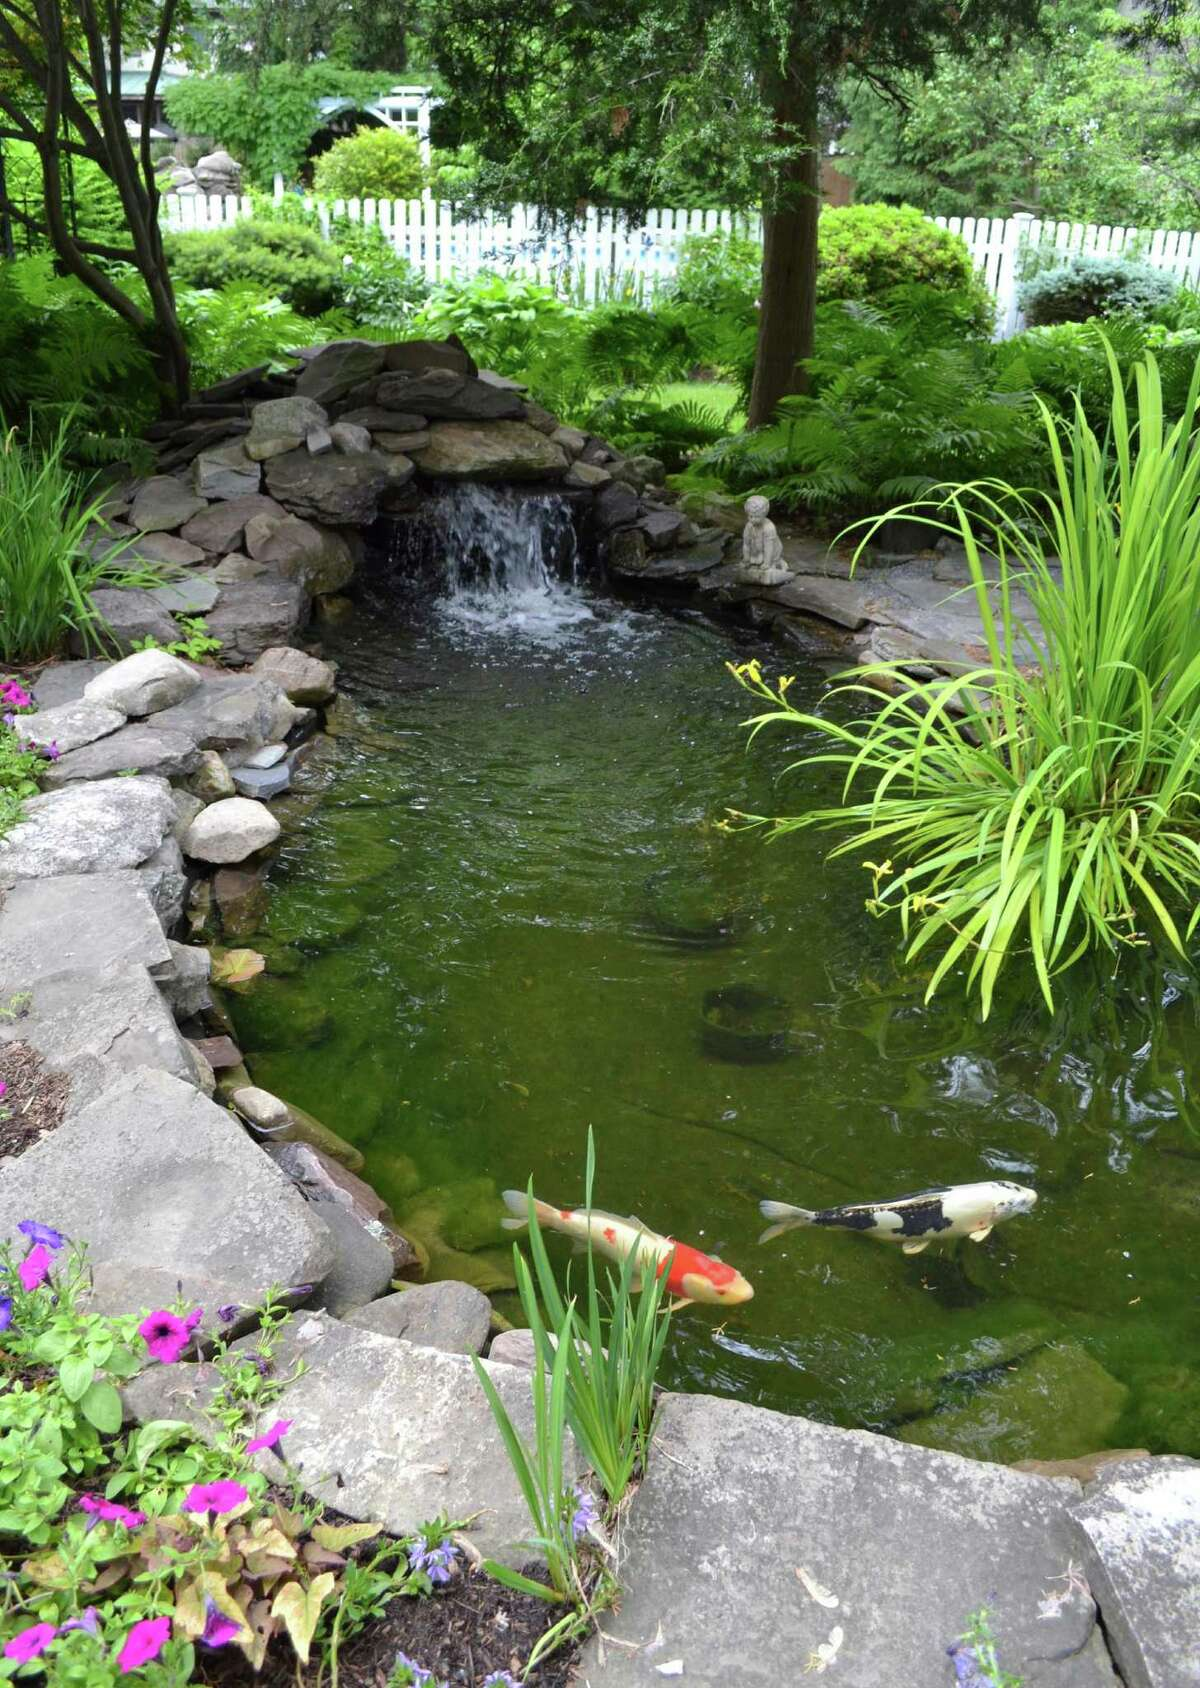 The pond is a main feature of the Sheehan garden.